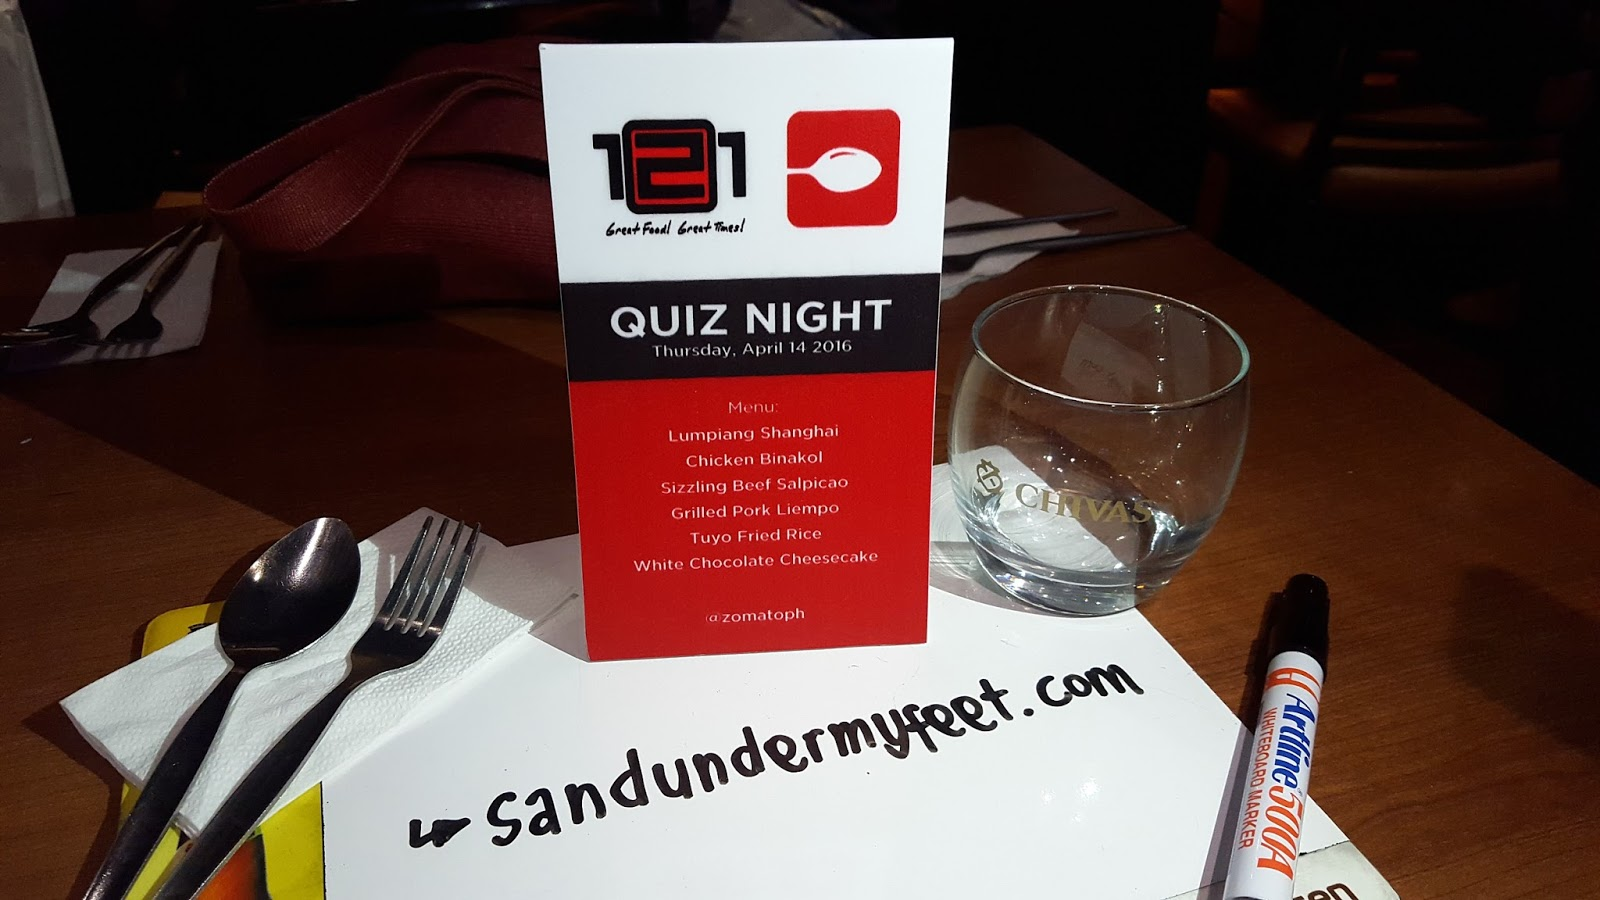 Sand under my feet 121 bar and grill x zomato first ever quiz night a handful of zomato foodies and zomato employees attended the said event and groups were formed to battle one another stopboris Image collections